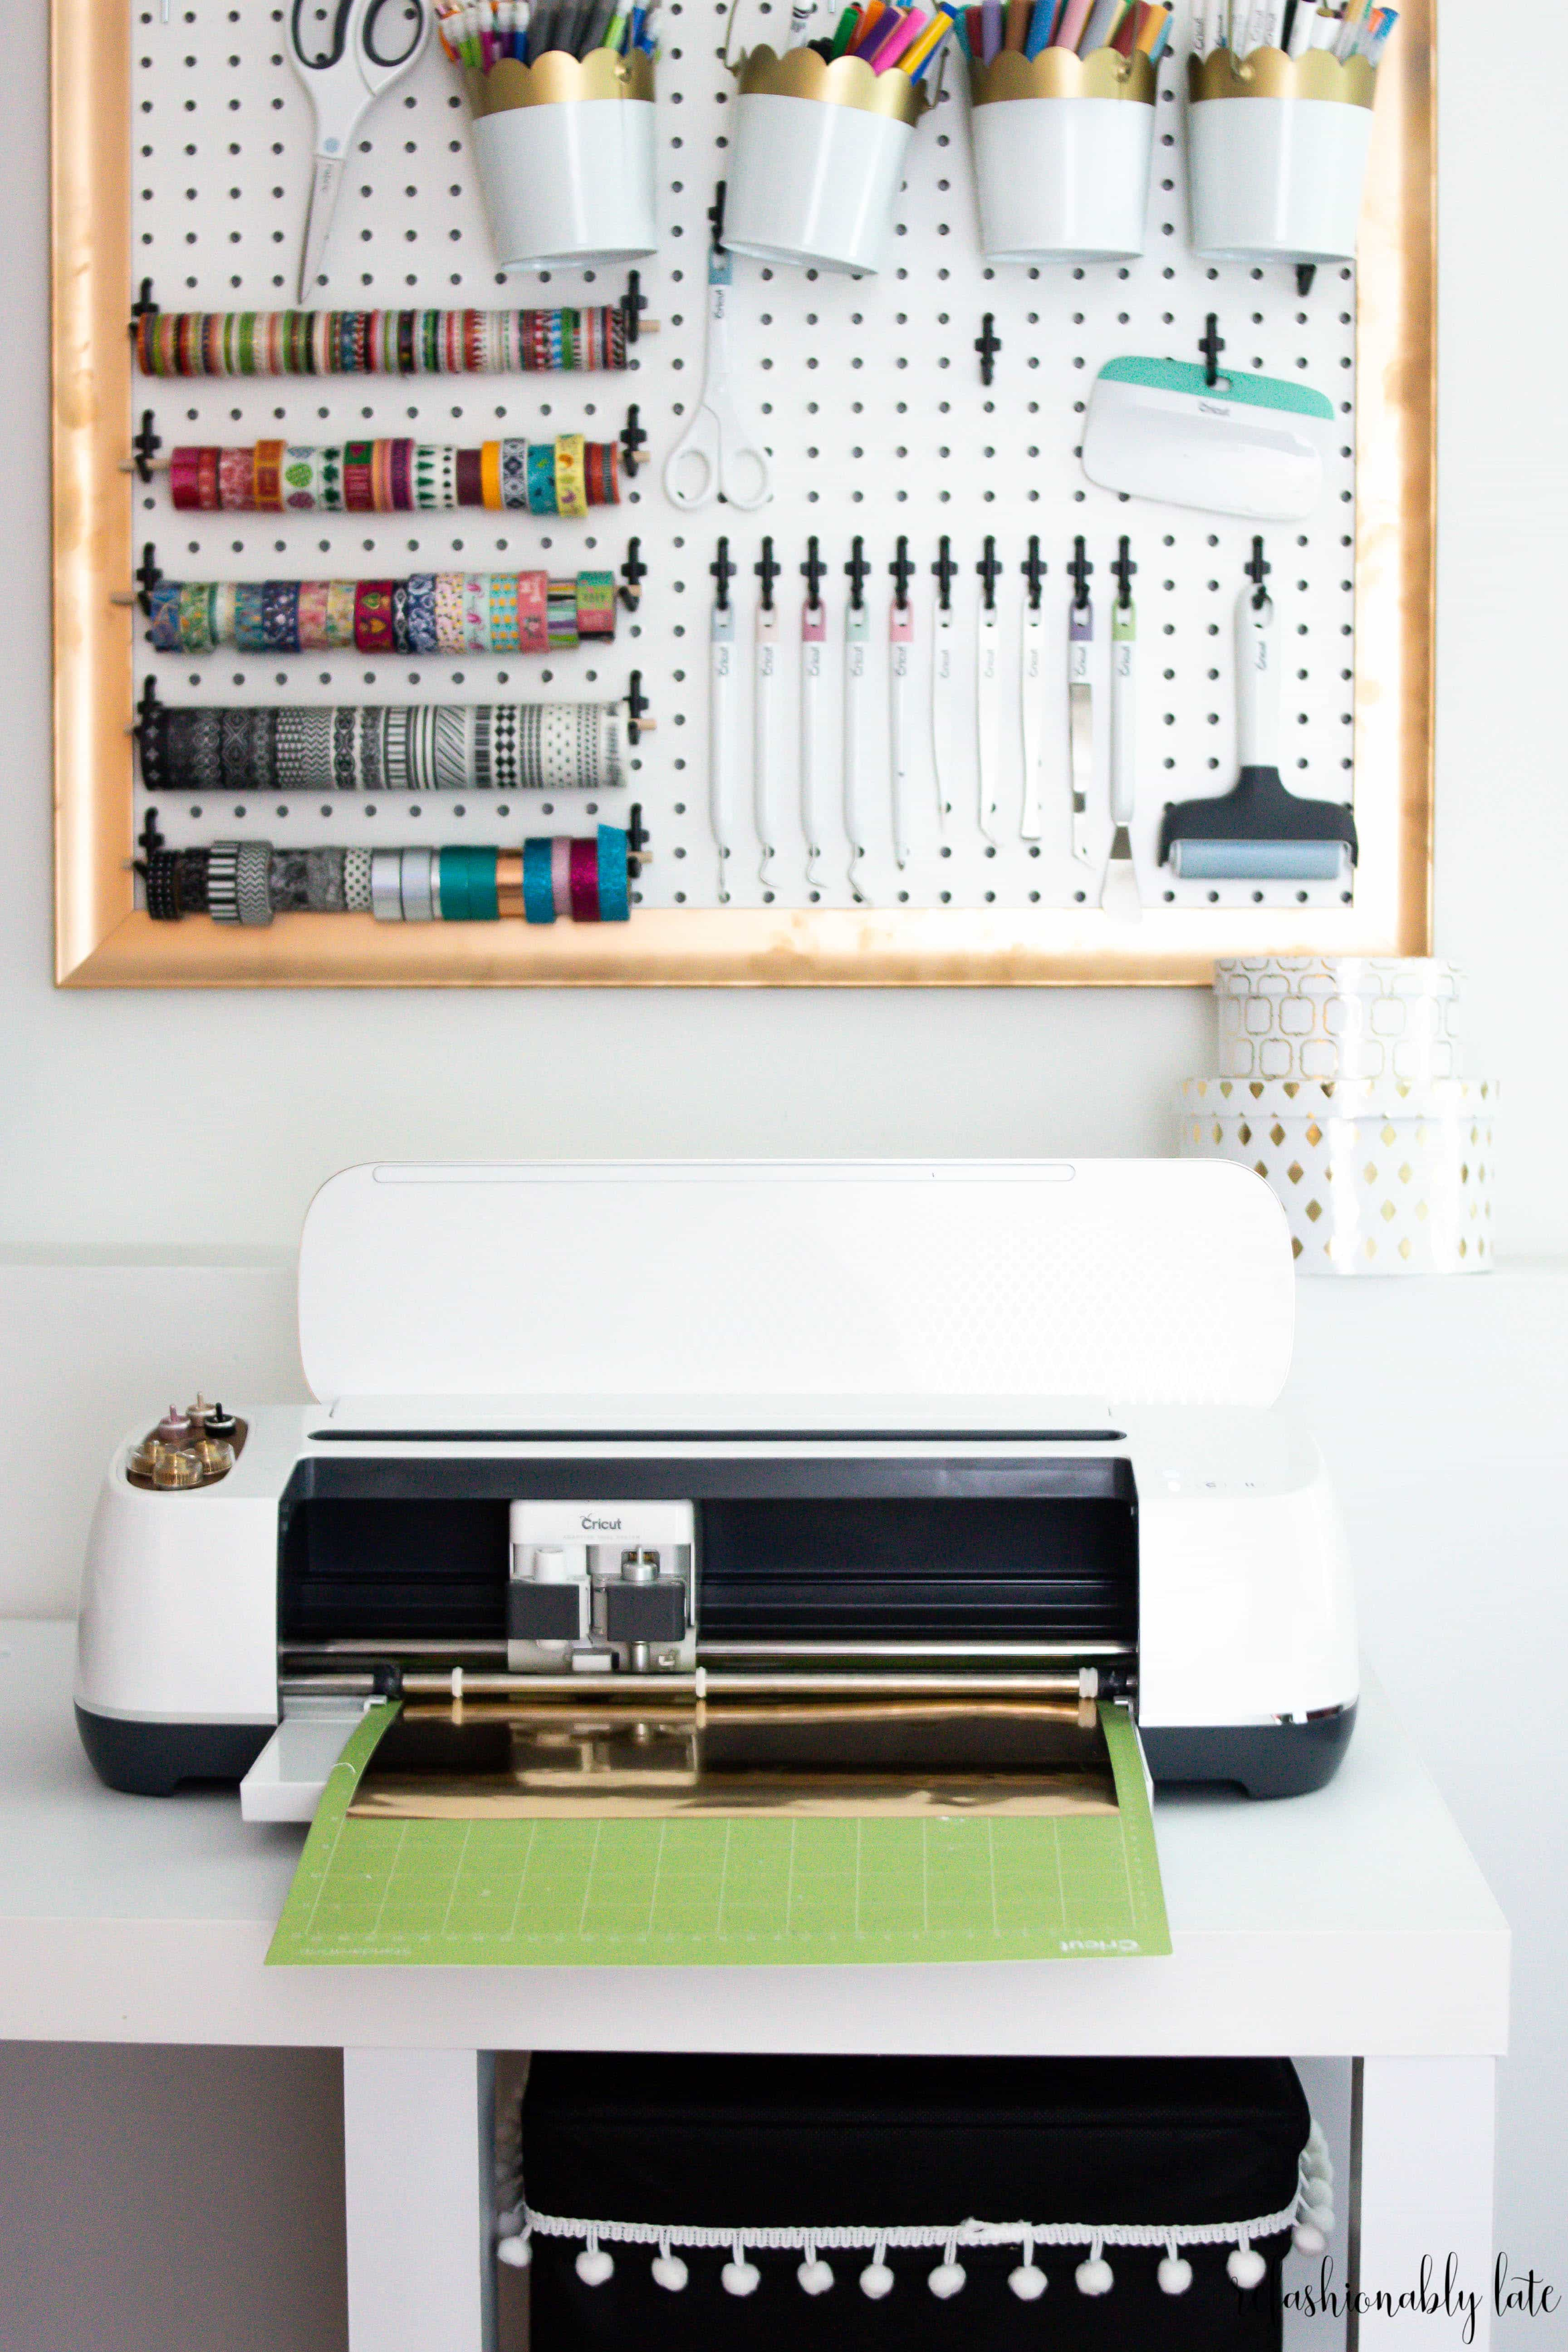 How to Use the Draw Tool in Cricut Design Space